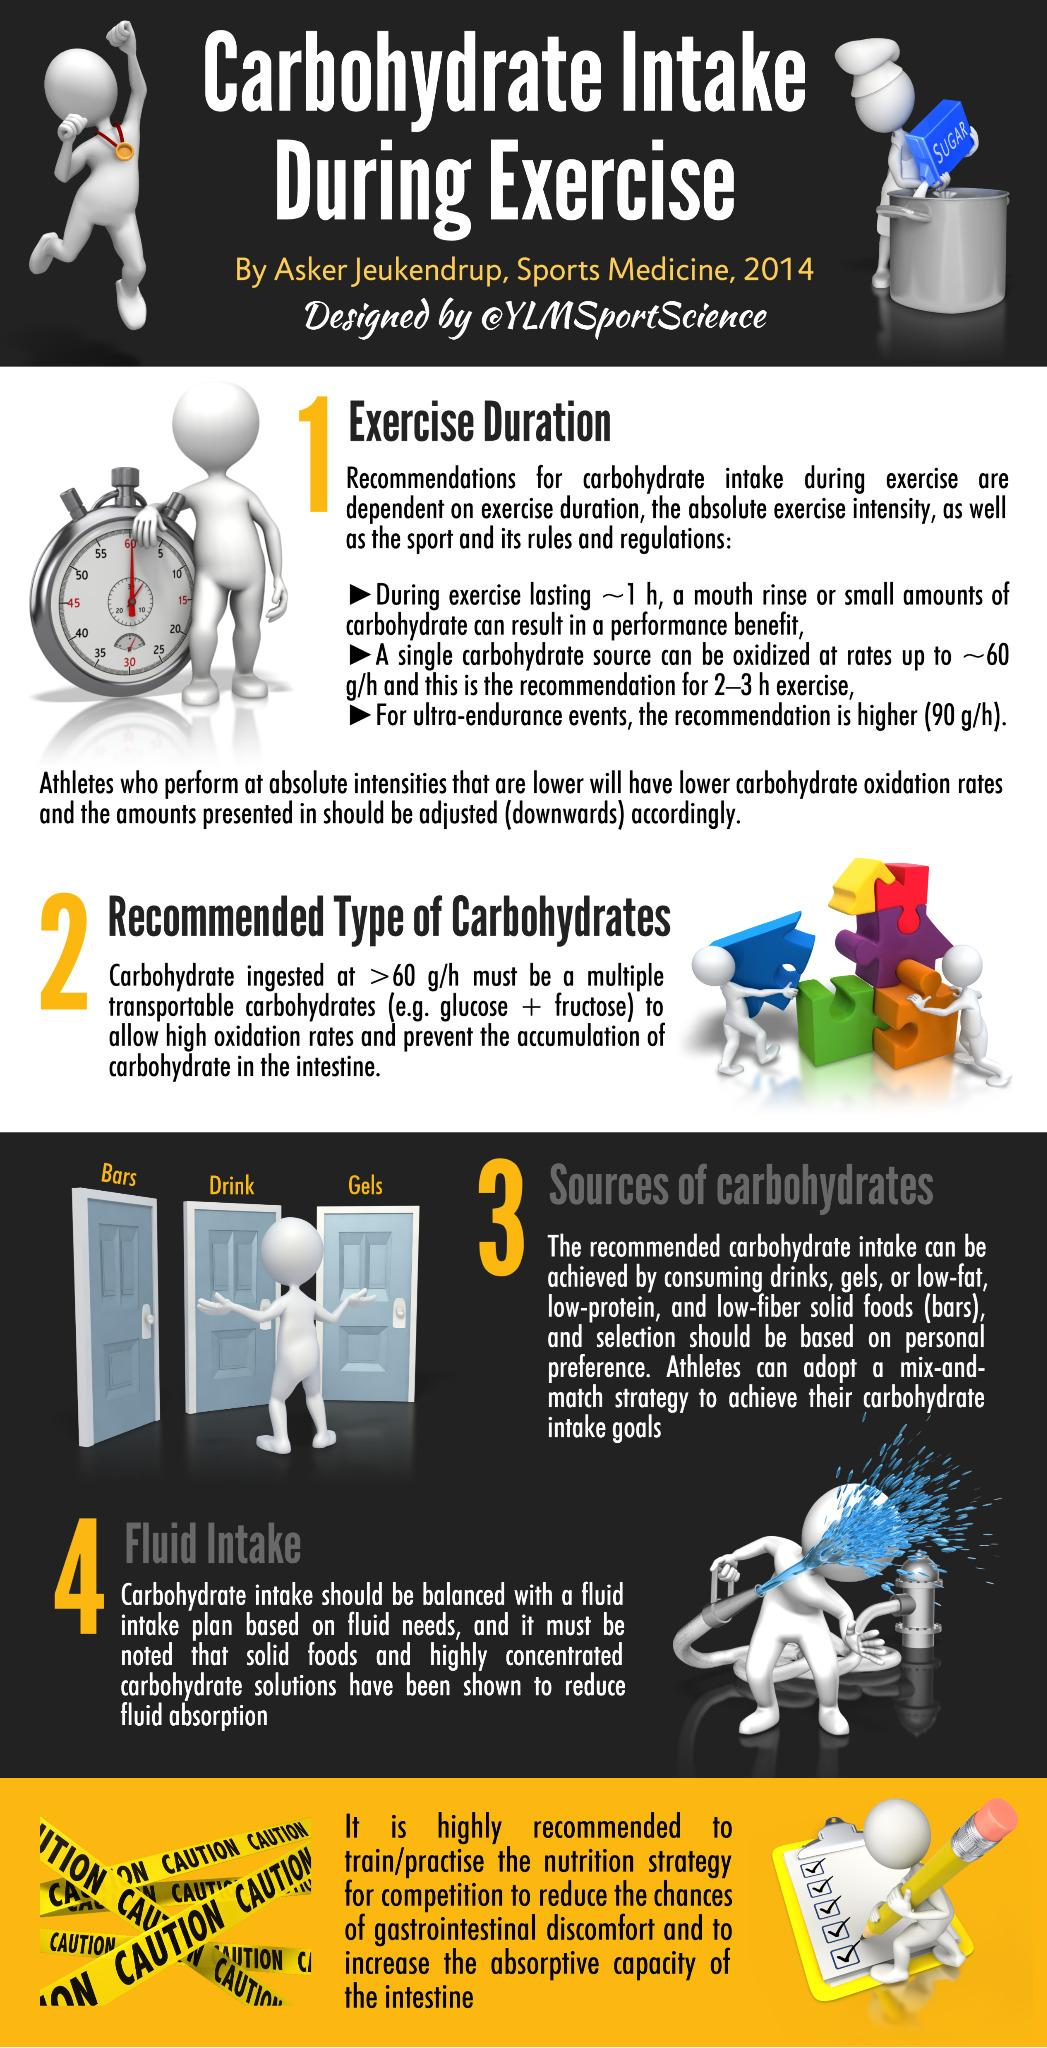 RT @YLMSportScience: #Nutrition #Competition | Carbohydrate Intake During Exercise: How Much is Needed? by @Jeukendrup in @SportsMedicineJ http://t.co/DPrivMNOjK